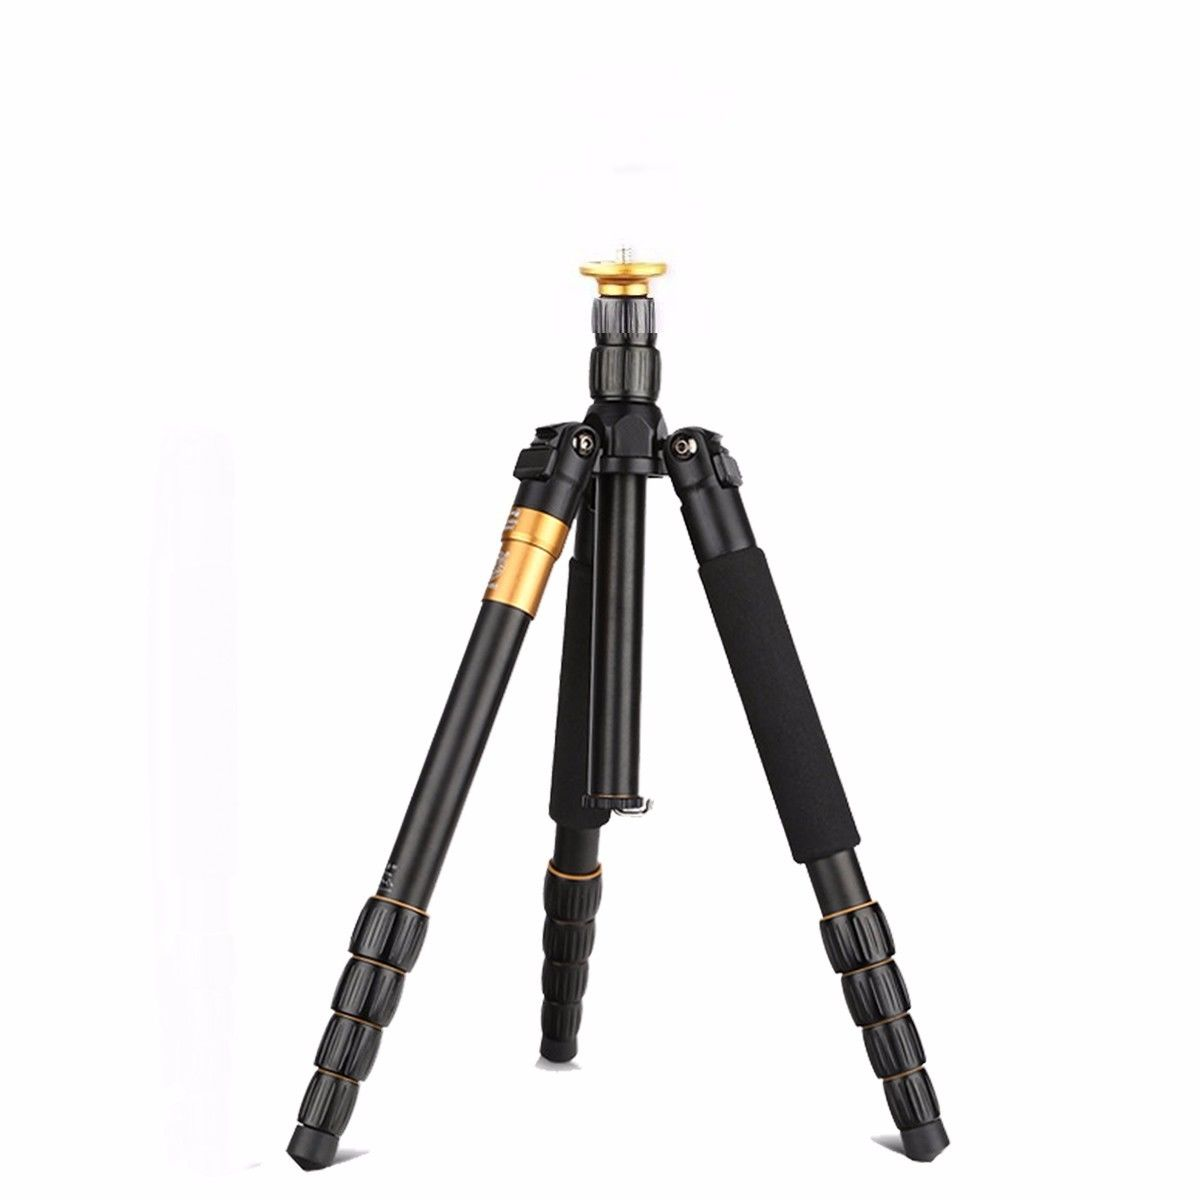 Q666 Lightweight Tripod For DSLR Camera Without Ball Head Monopod Tripod Compact Travel Camera Stand For Canon Nikon Sony SLR aluminium alloy professional camera tripod flexible dslr video monopod for photography with head suitable for 65mm bowl size